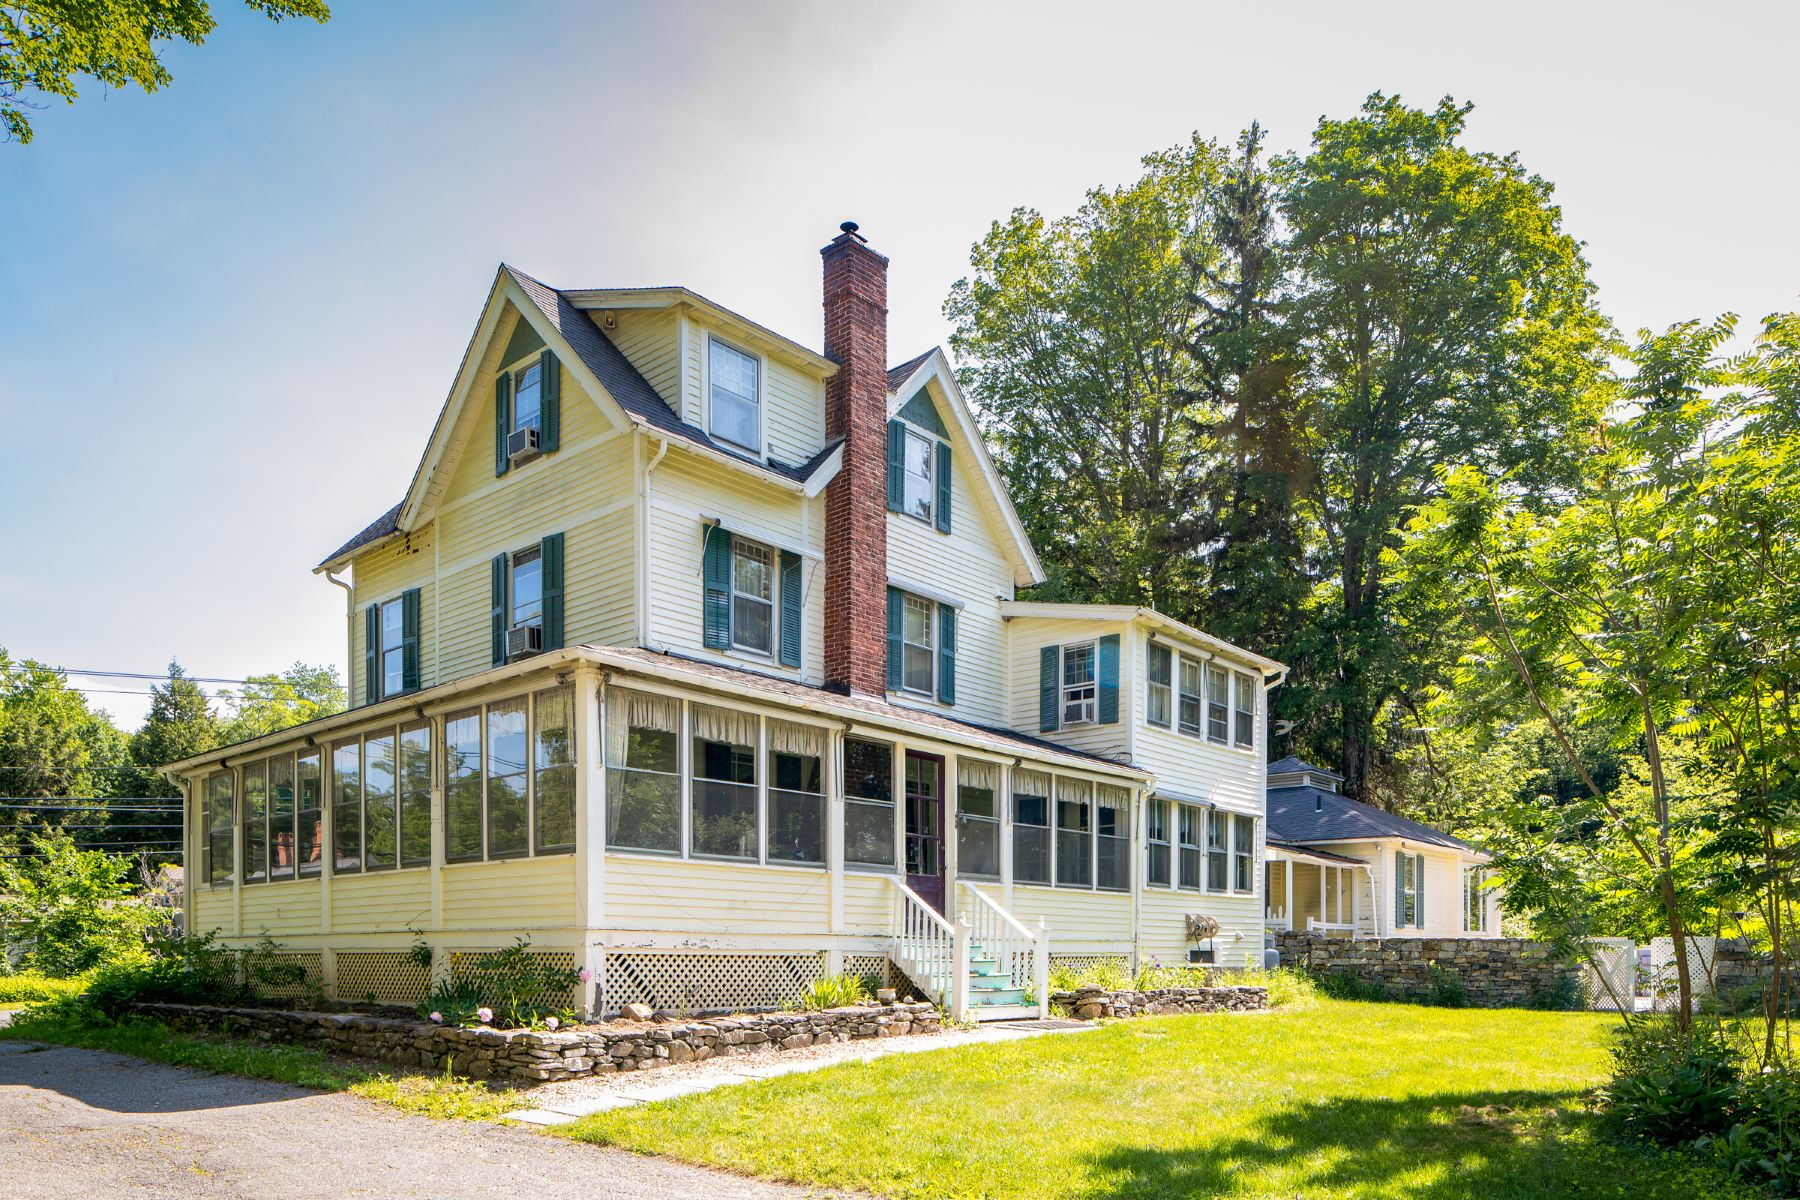 Single Family Homes for Sale at Angel Hill 54 Greenwoods Road Norfolk, Connecticut 06058 United States